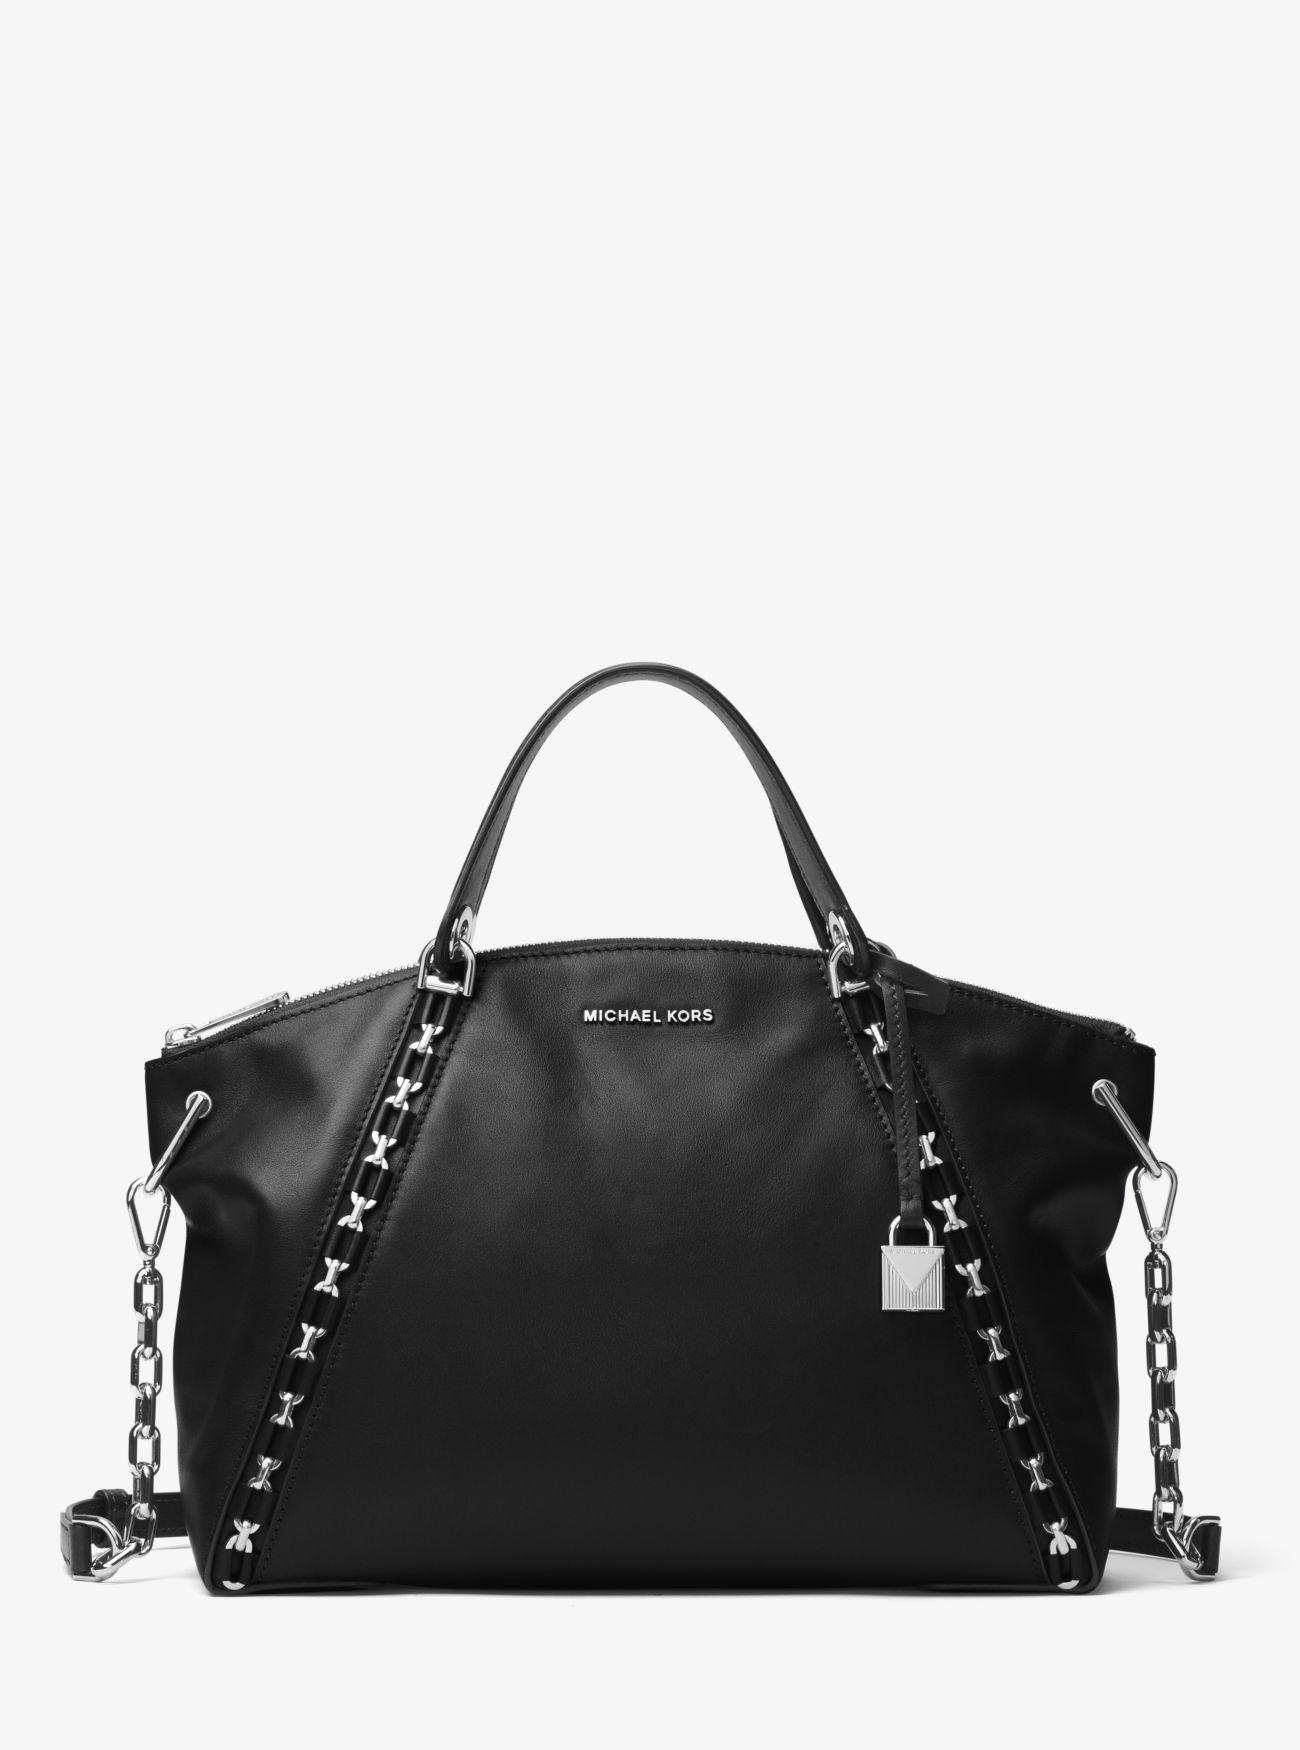 0b69b8e6fcf781 Gallery. Previously sold at: Bloomingdale's, Michael Kors